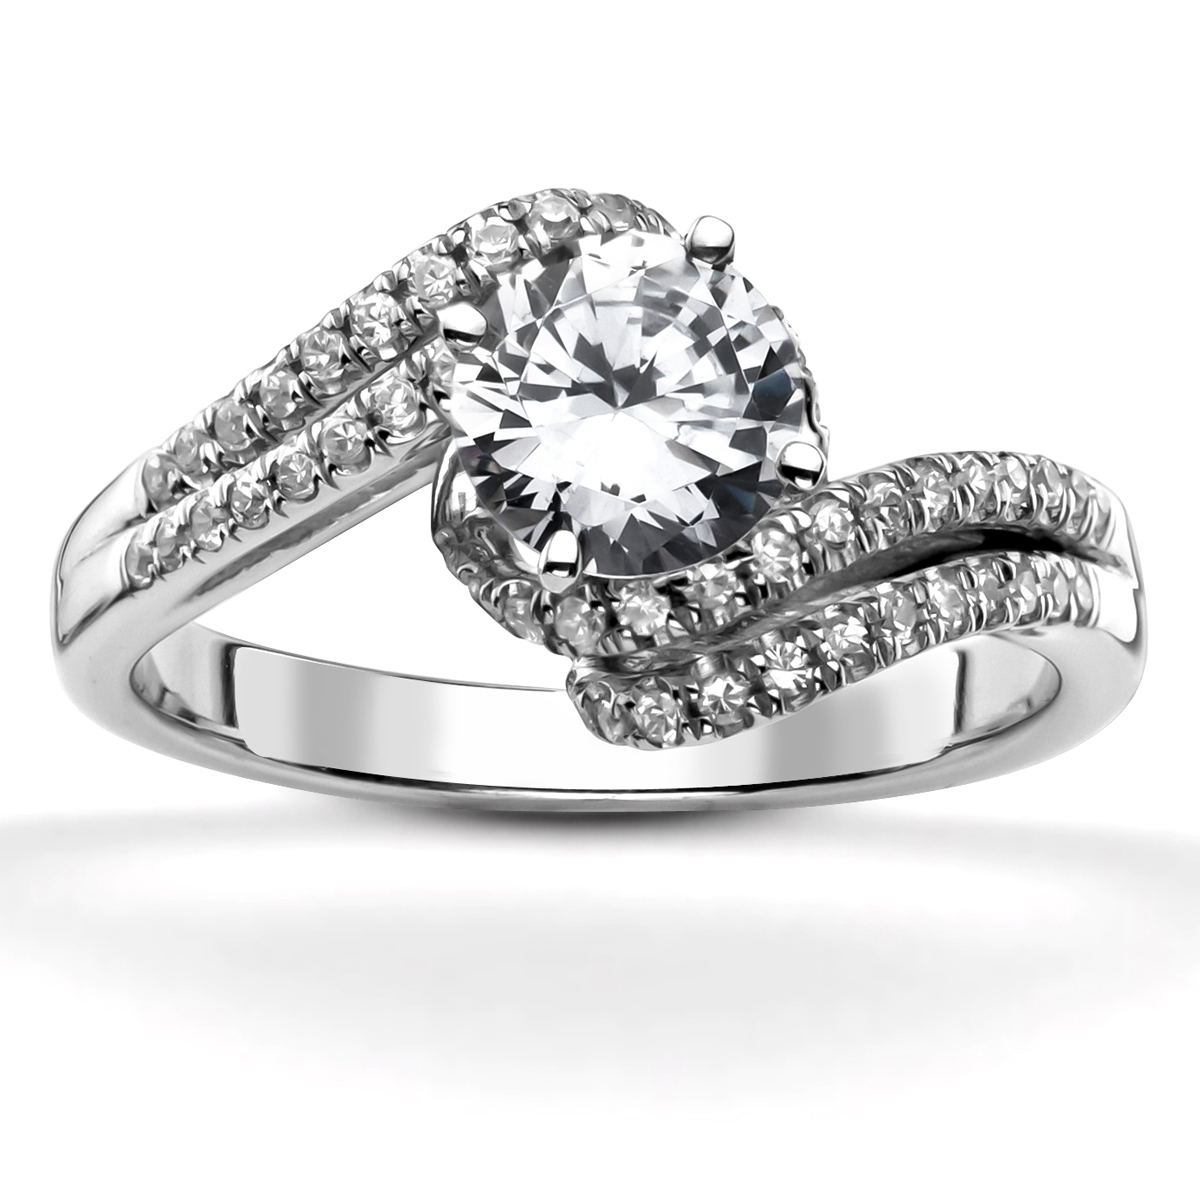 Jewelry, Women's Rings, White Gold, Platinum, Engagement Rings, Radiant Cut Engagement Ring